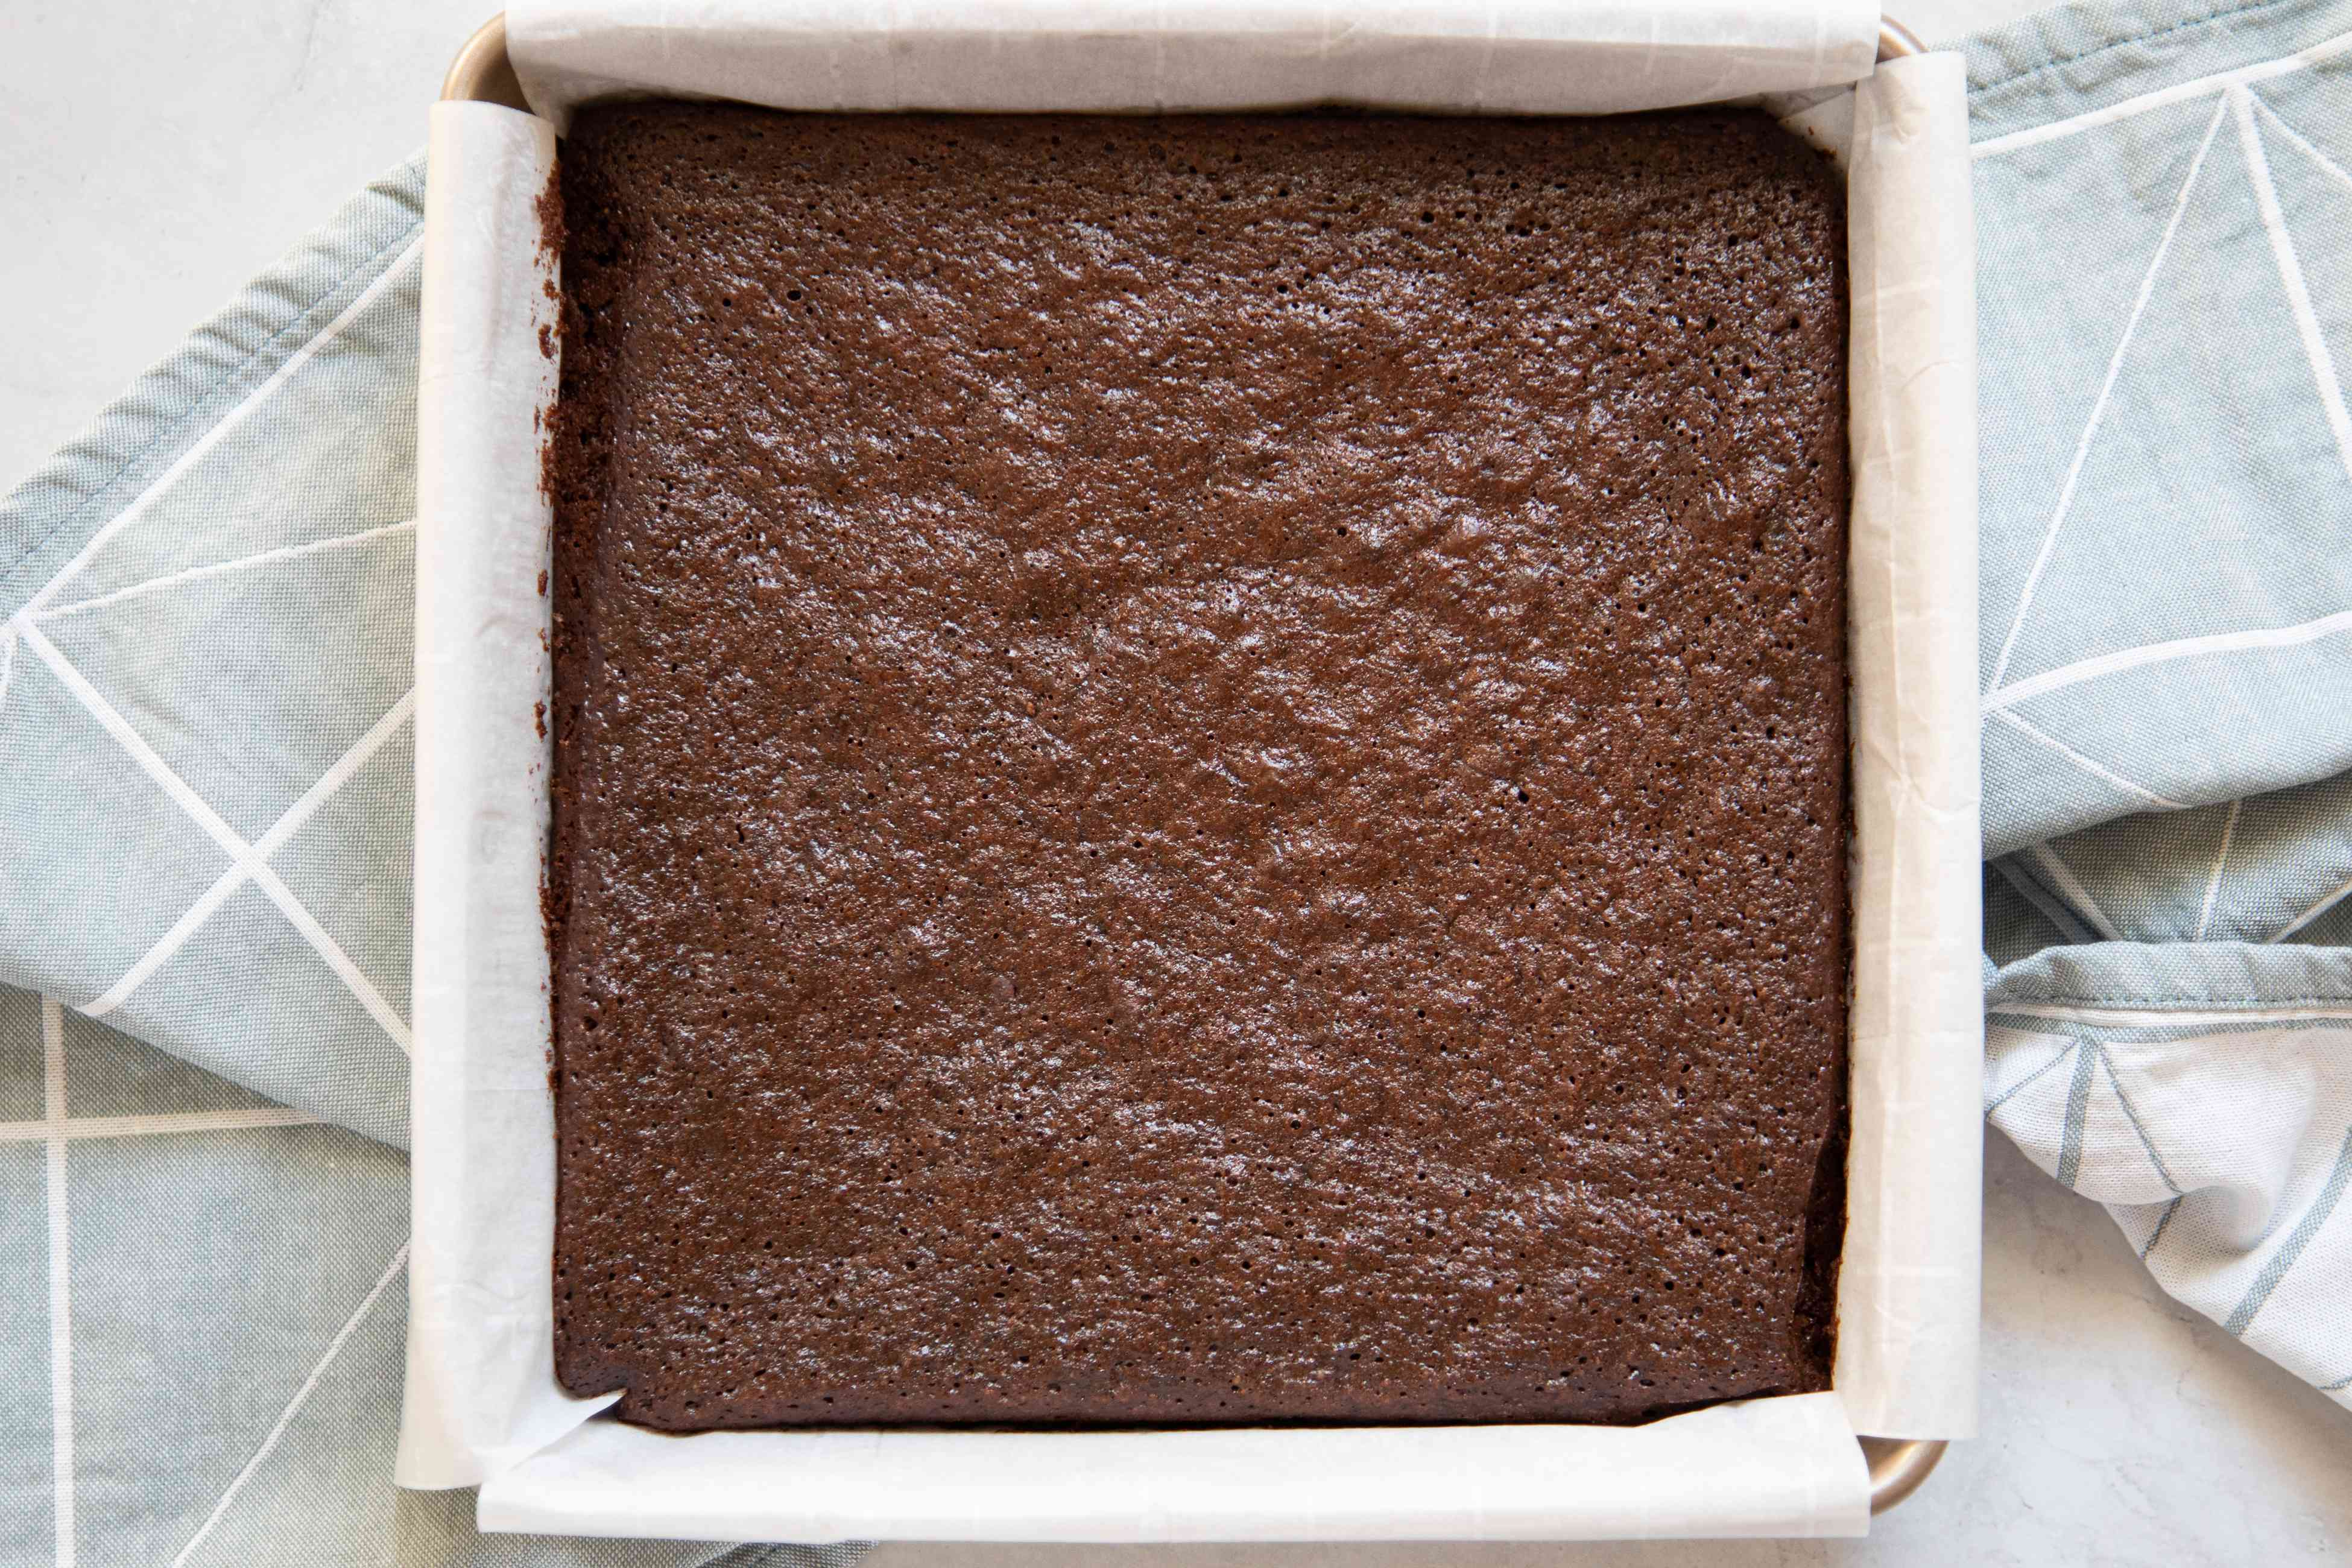 Baked Gluten-Free Soy Sauce brownies cooling in the pan.